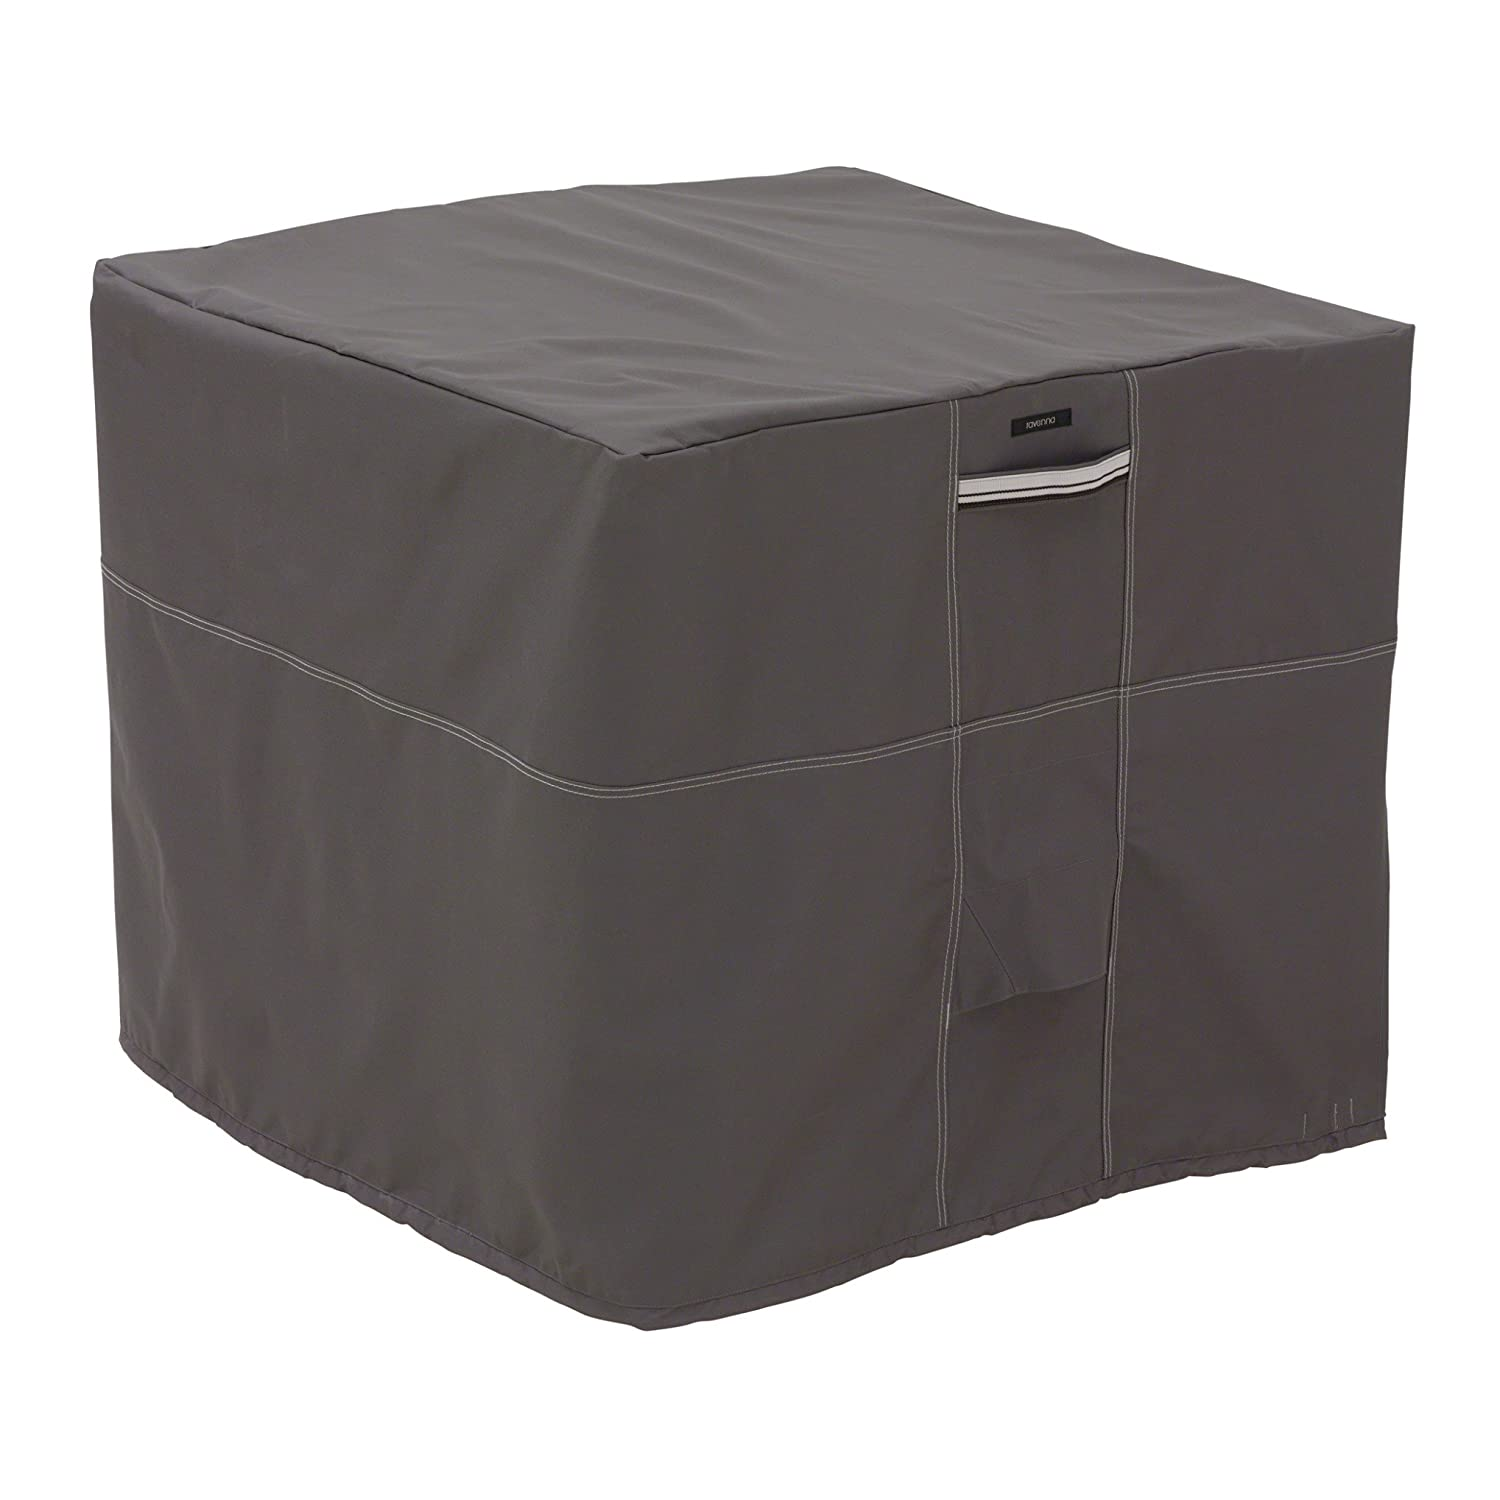 Classic Accessories Ravenna Square Air Conditioner Cover